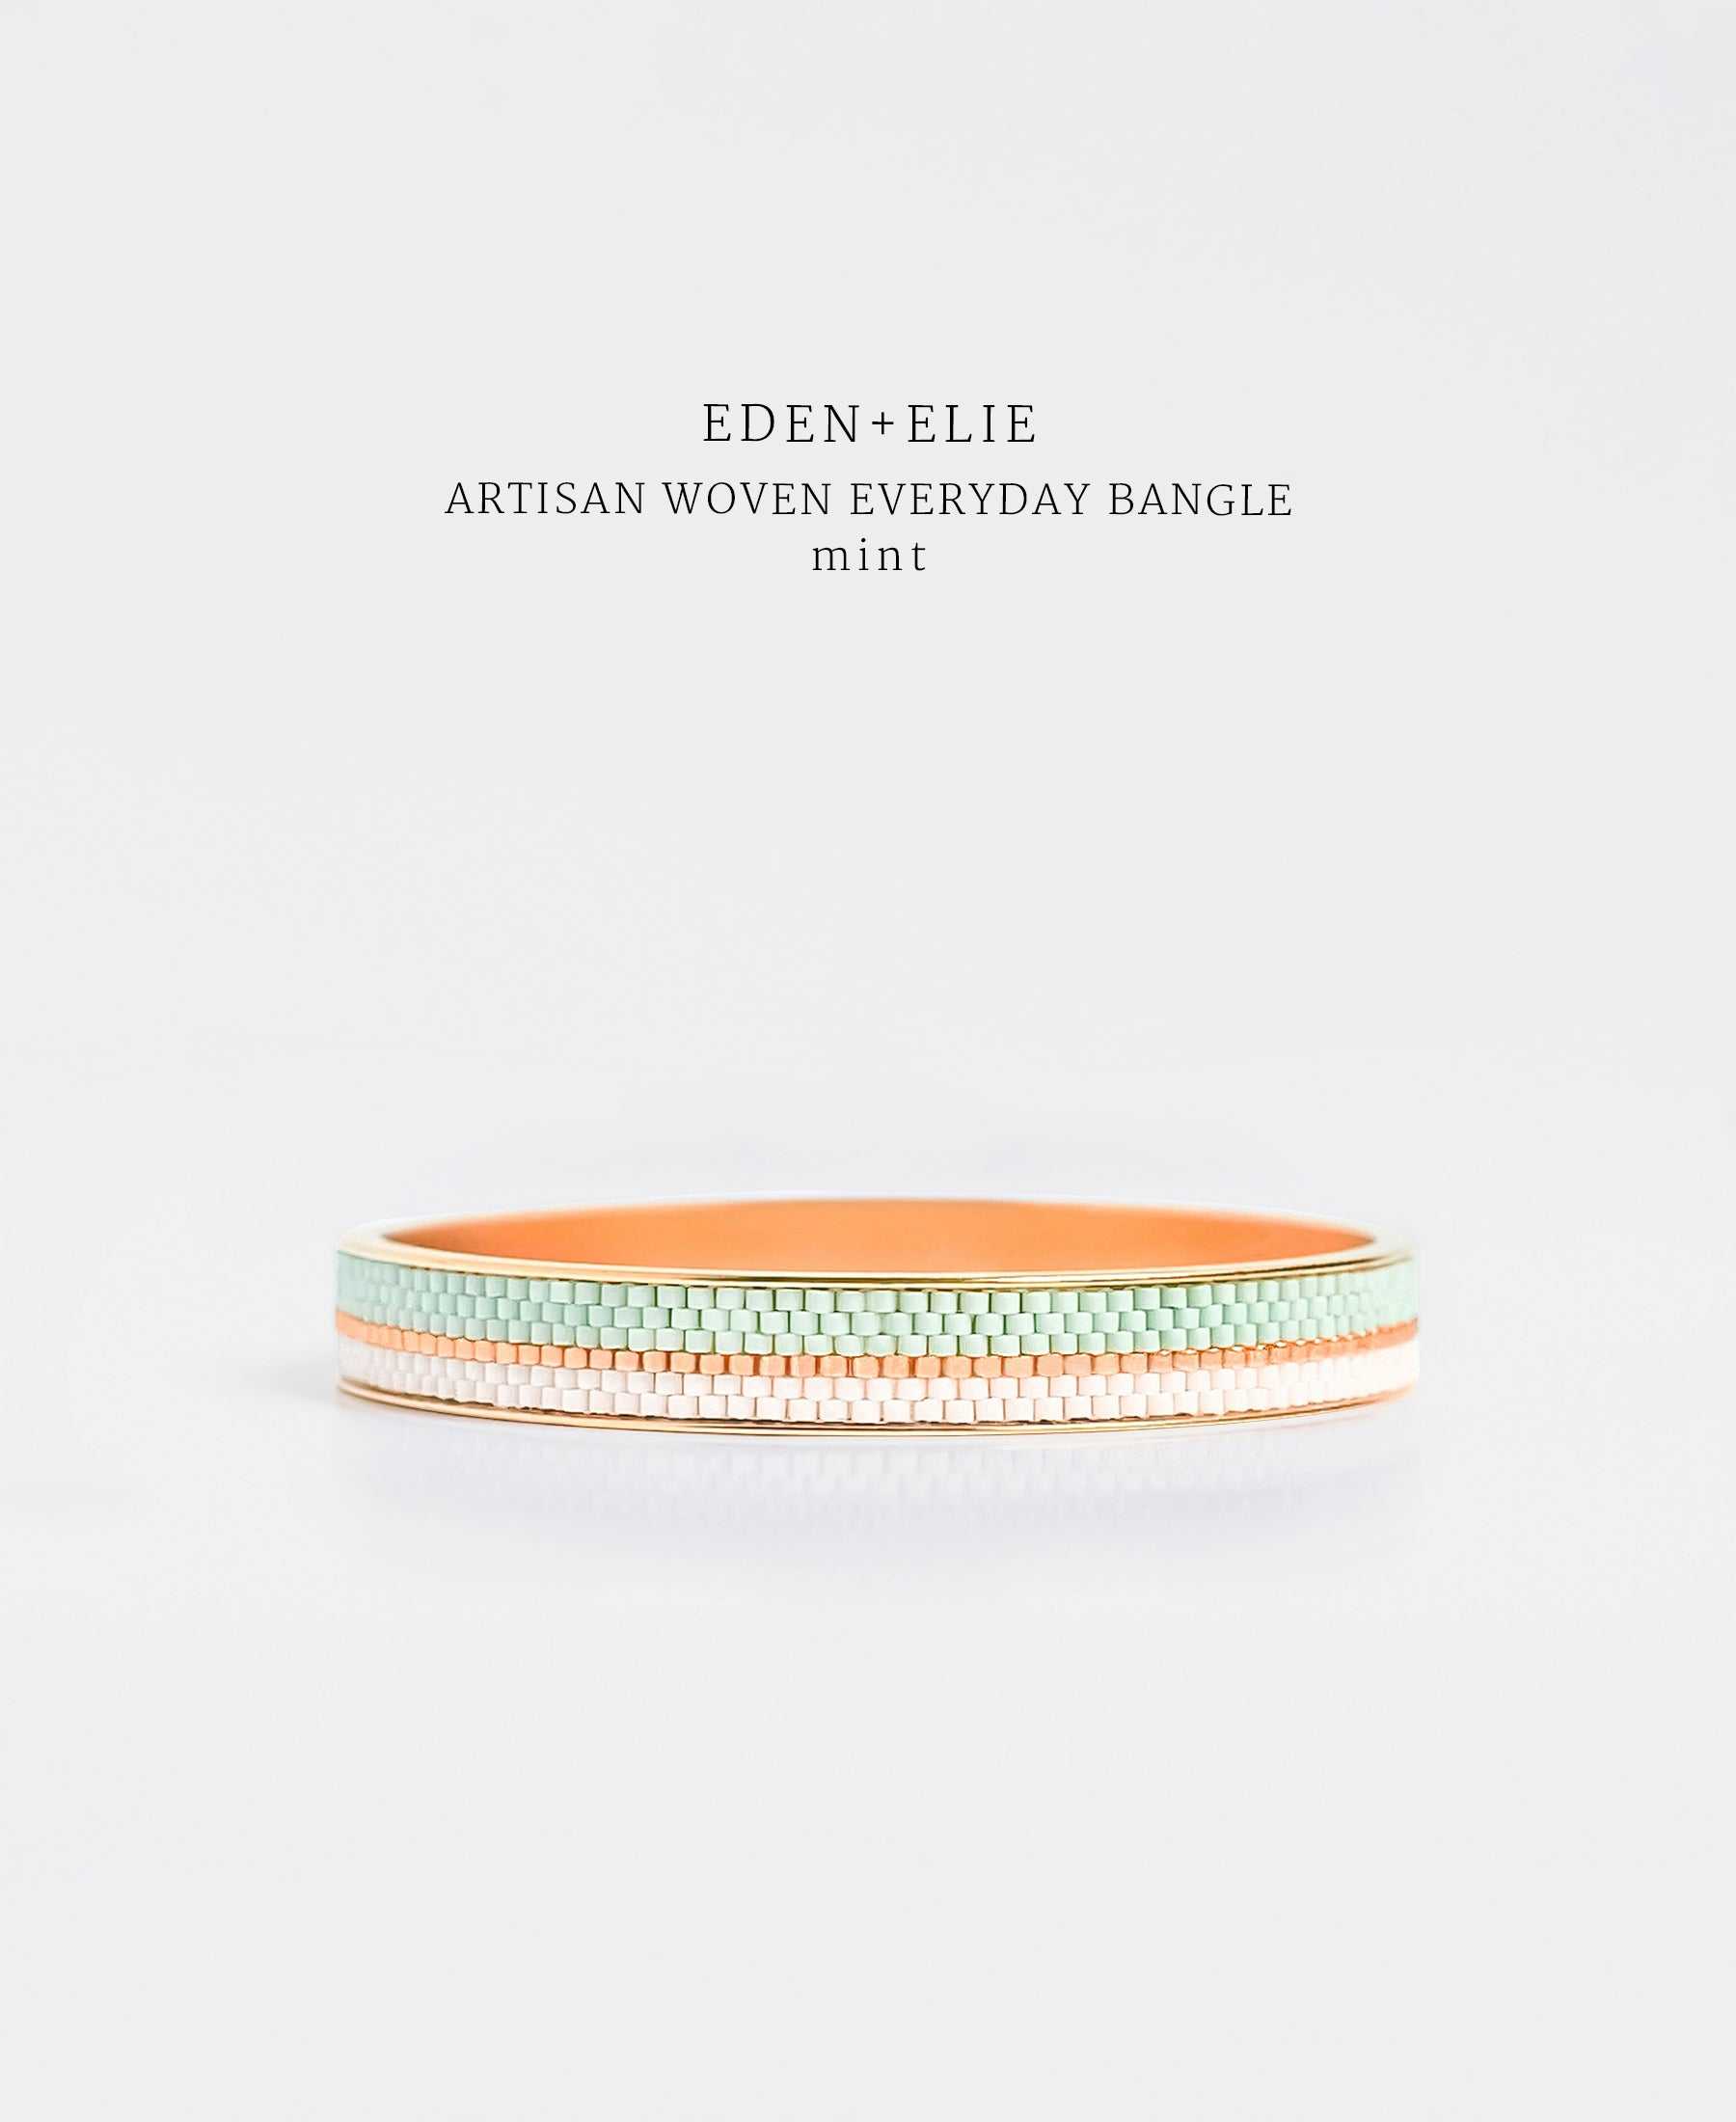 EDEN + ELIE Everyday gold narrow bangle - mint green